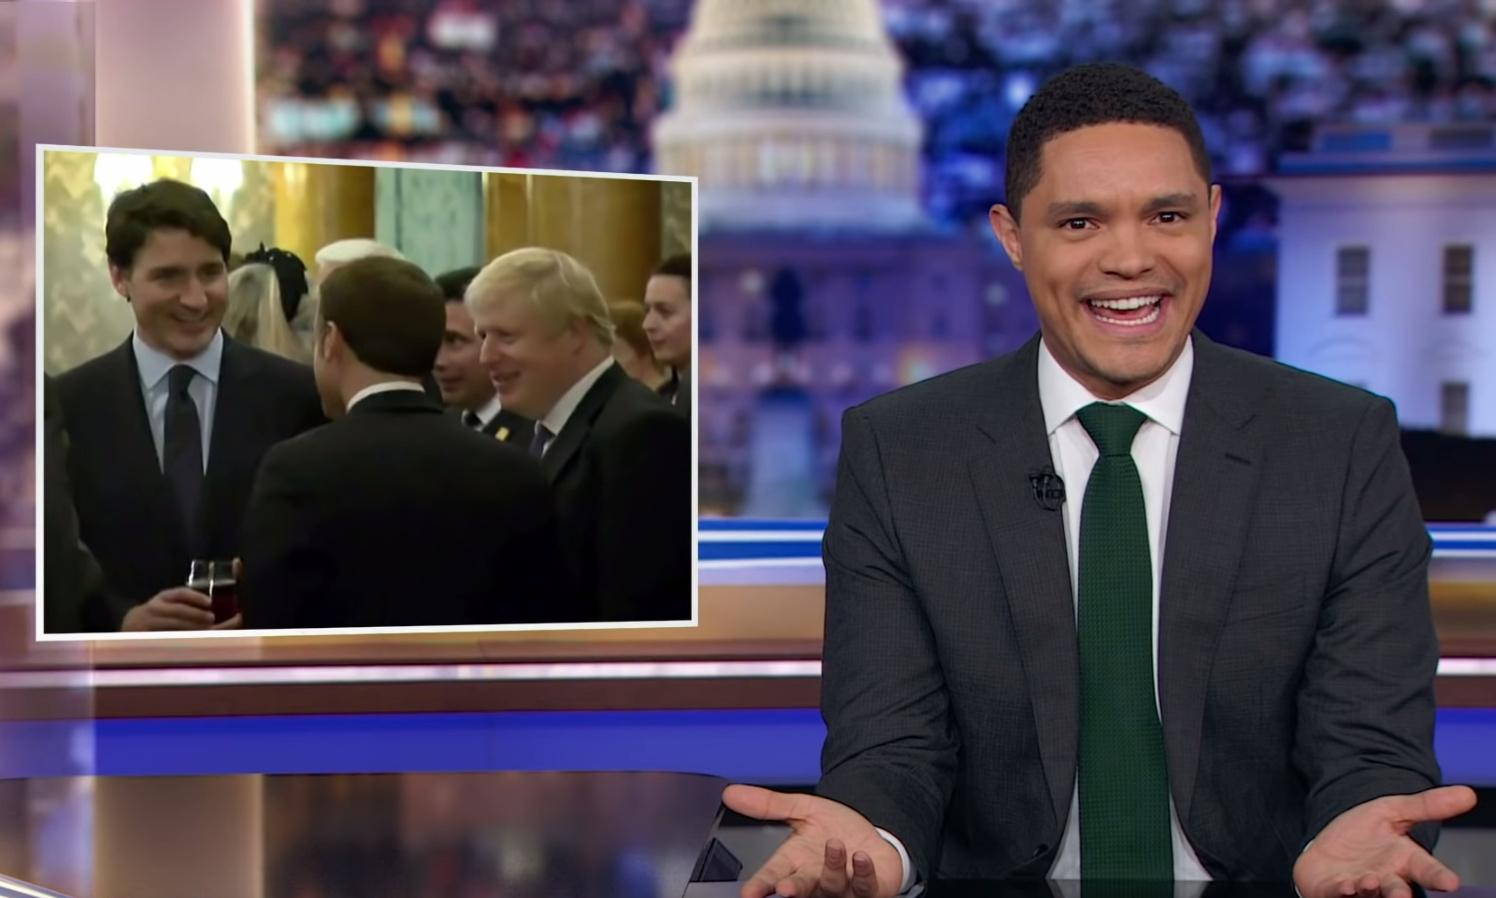 Trevor Noah: Trump realized 'all the cool kids at school are laughing' at him